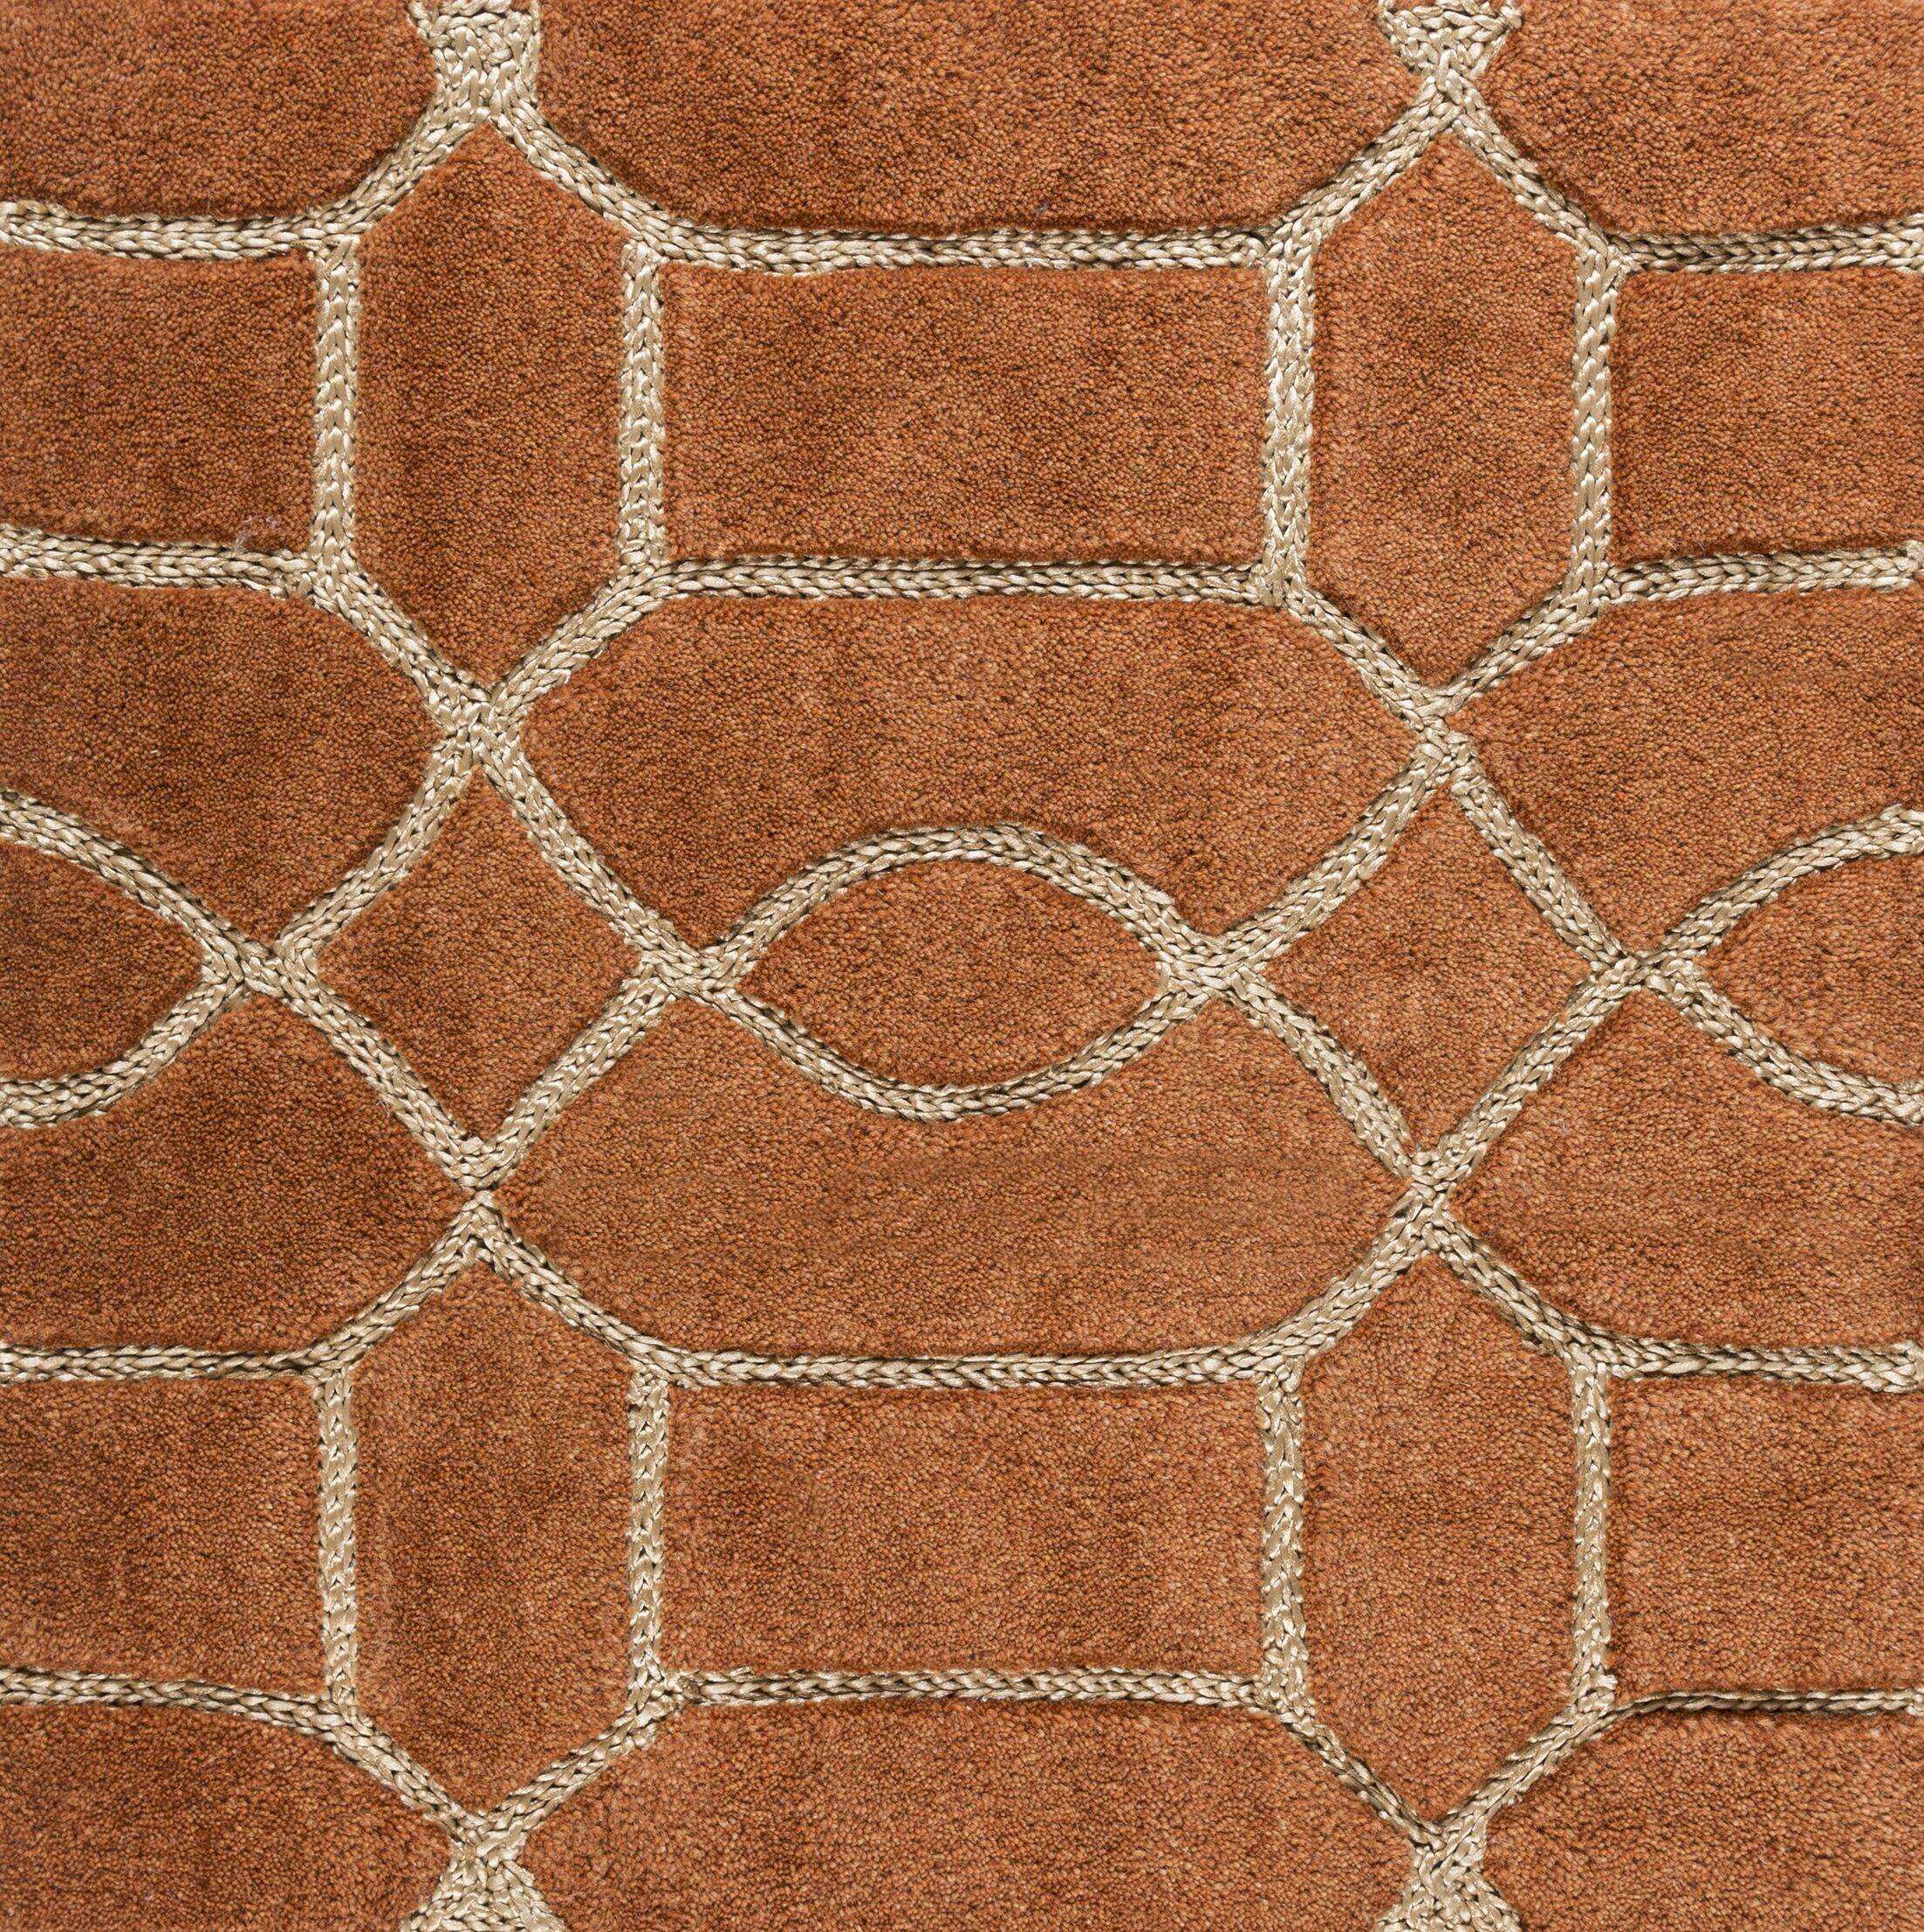 Desroches Hand-Tufted Orange/Beige Area Rug Rug Size: Rectangle 5' x 7'6